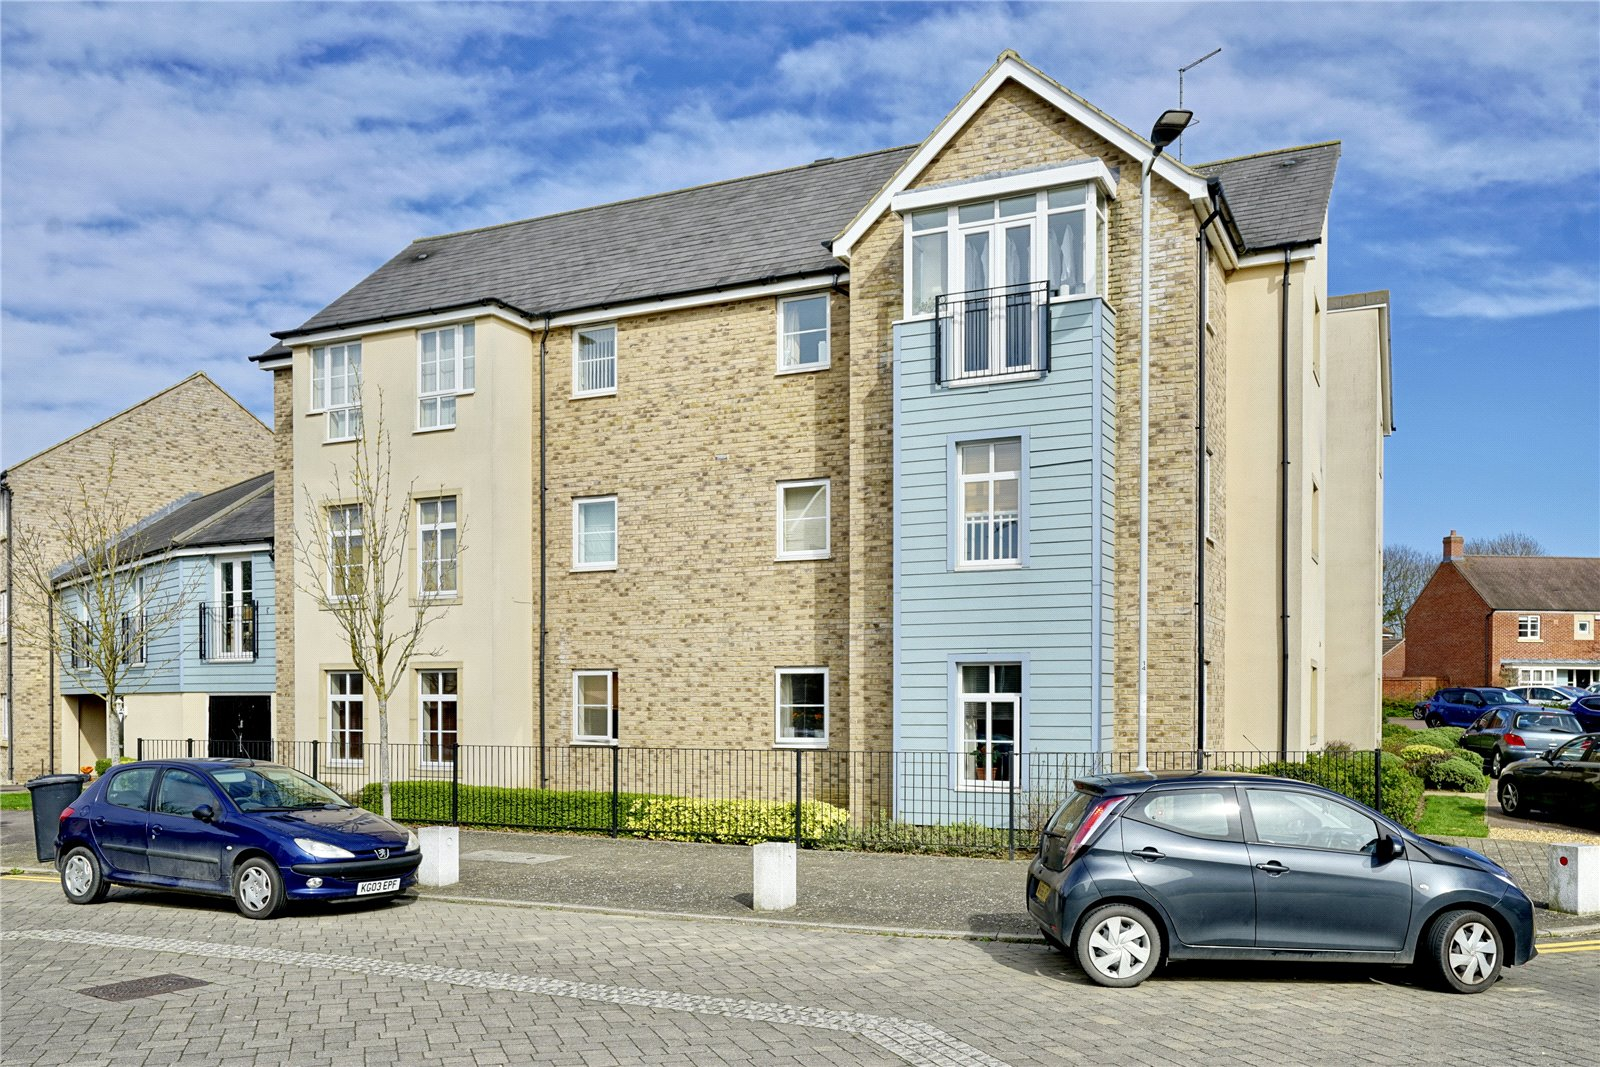 2 bed apartment for sale in Alsop Way, St. Neots, PE19